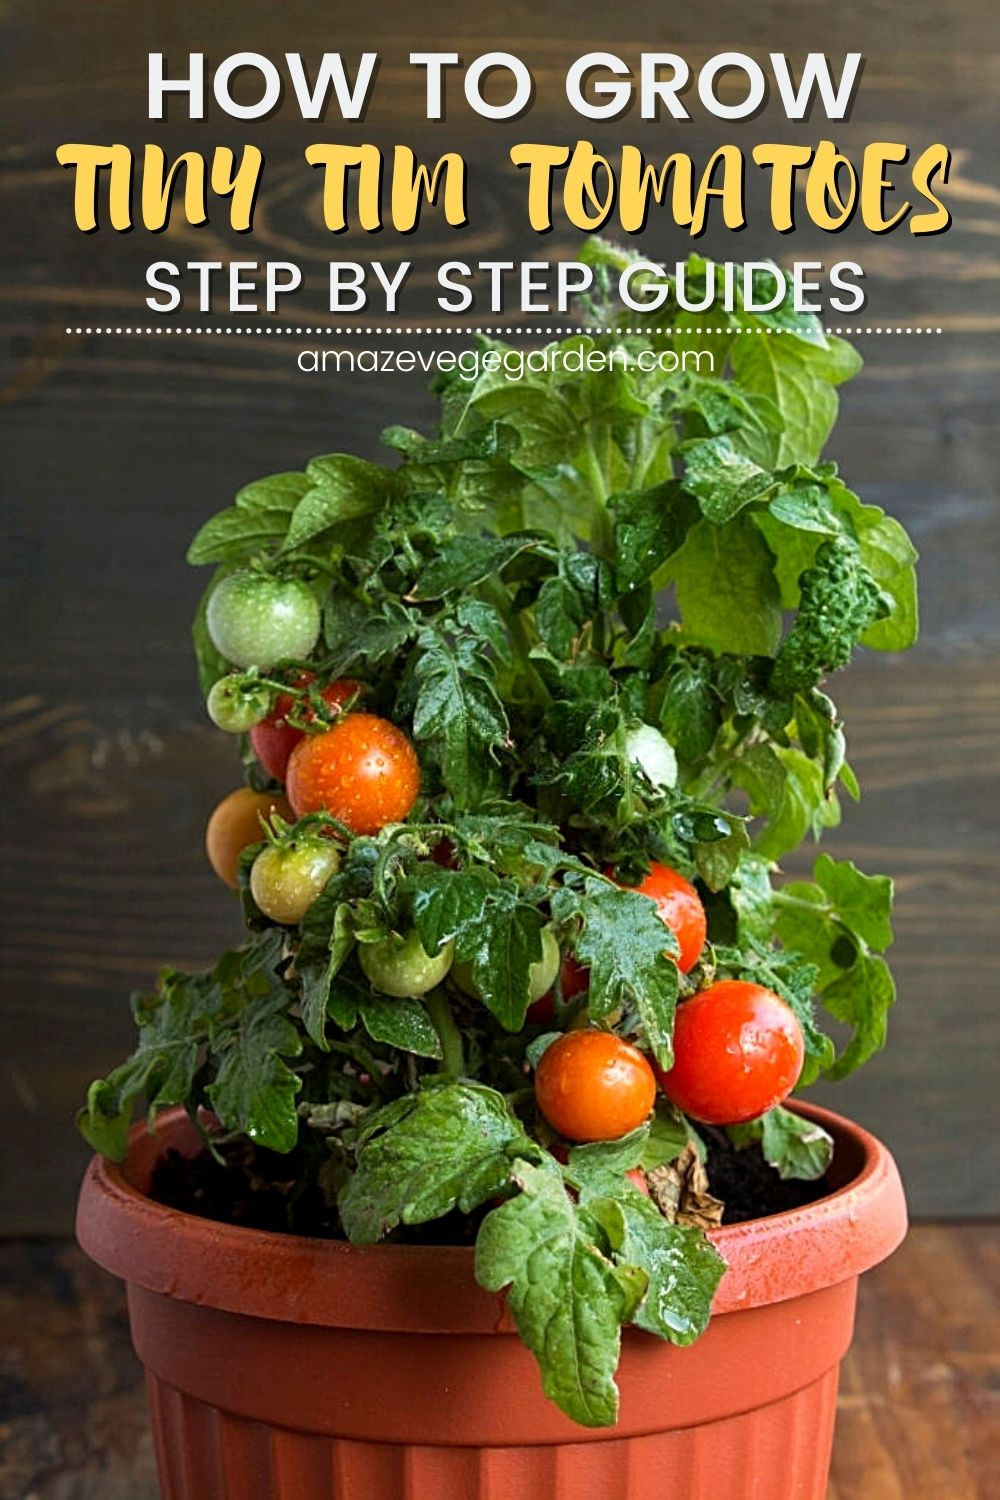 how to grow tiny tim tomatoes